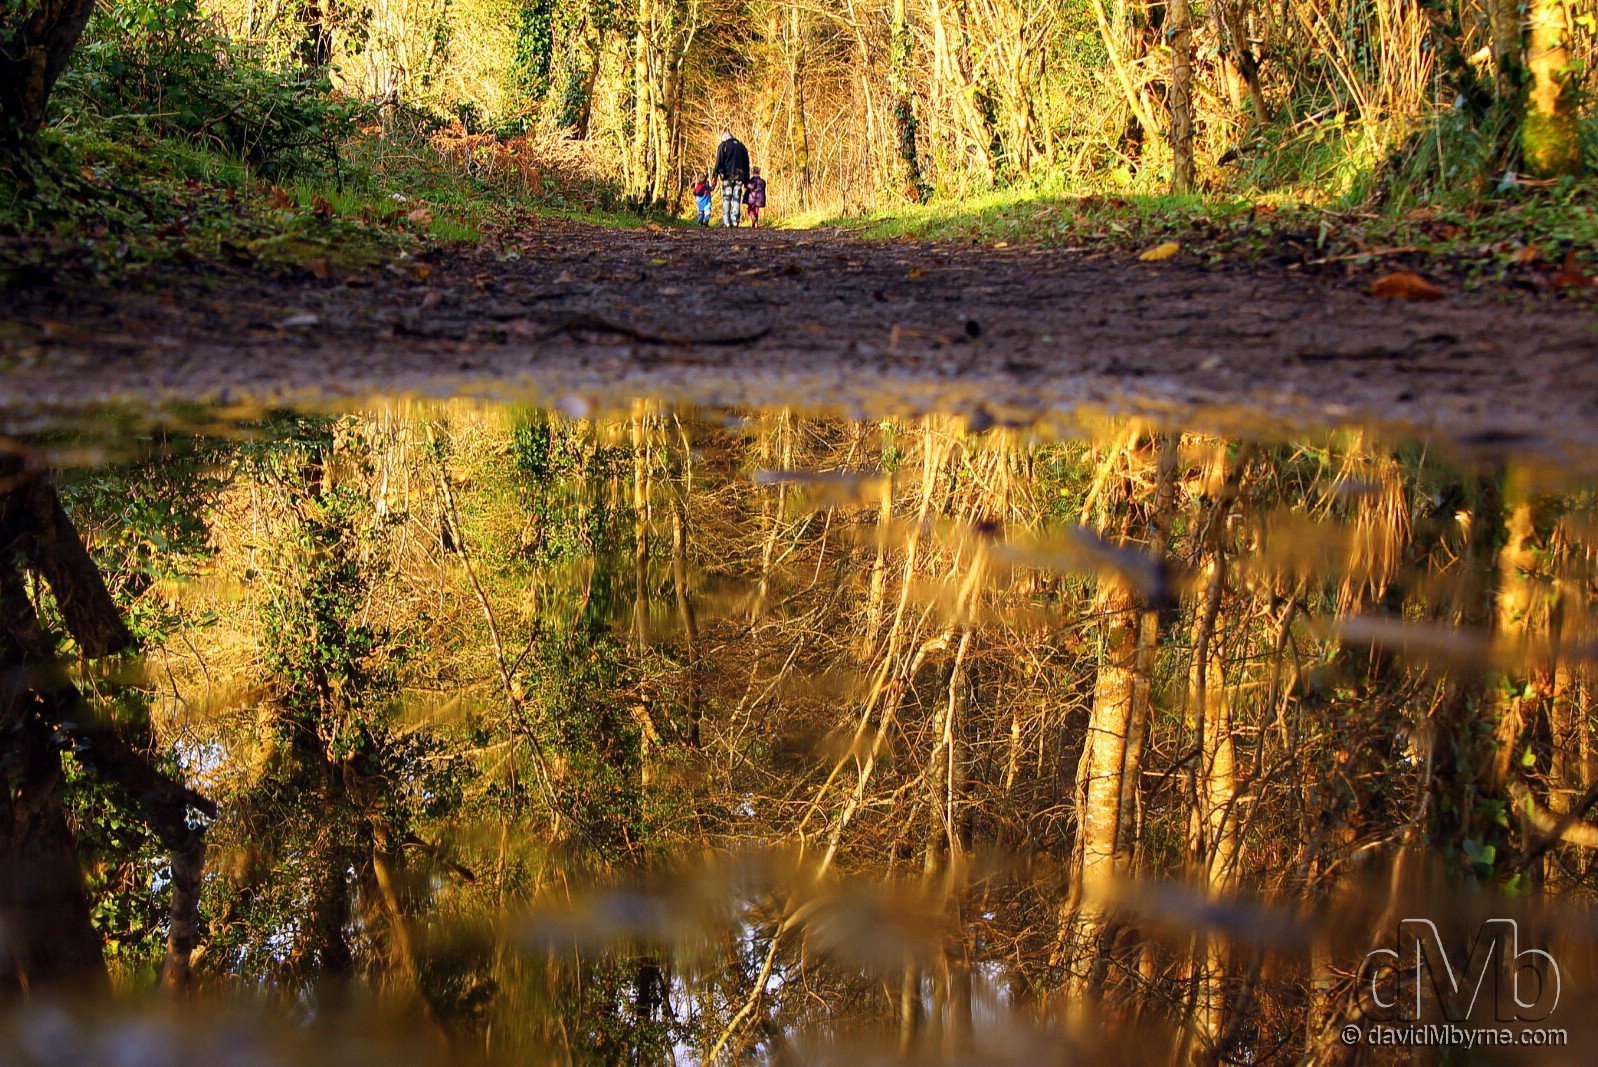 Reflections in Mote Park, County Roscommon, Ireland. November 19th, 2011 (EOS 60D || Tamron 28-75mm || 28mm, 1/60sec, f/3.5, iso100).